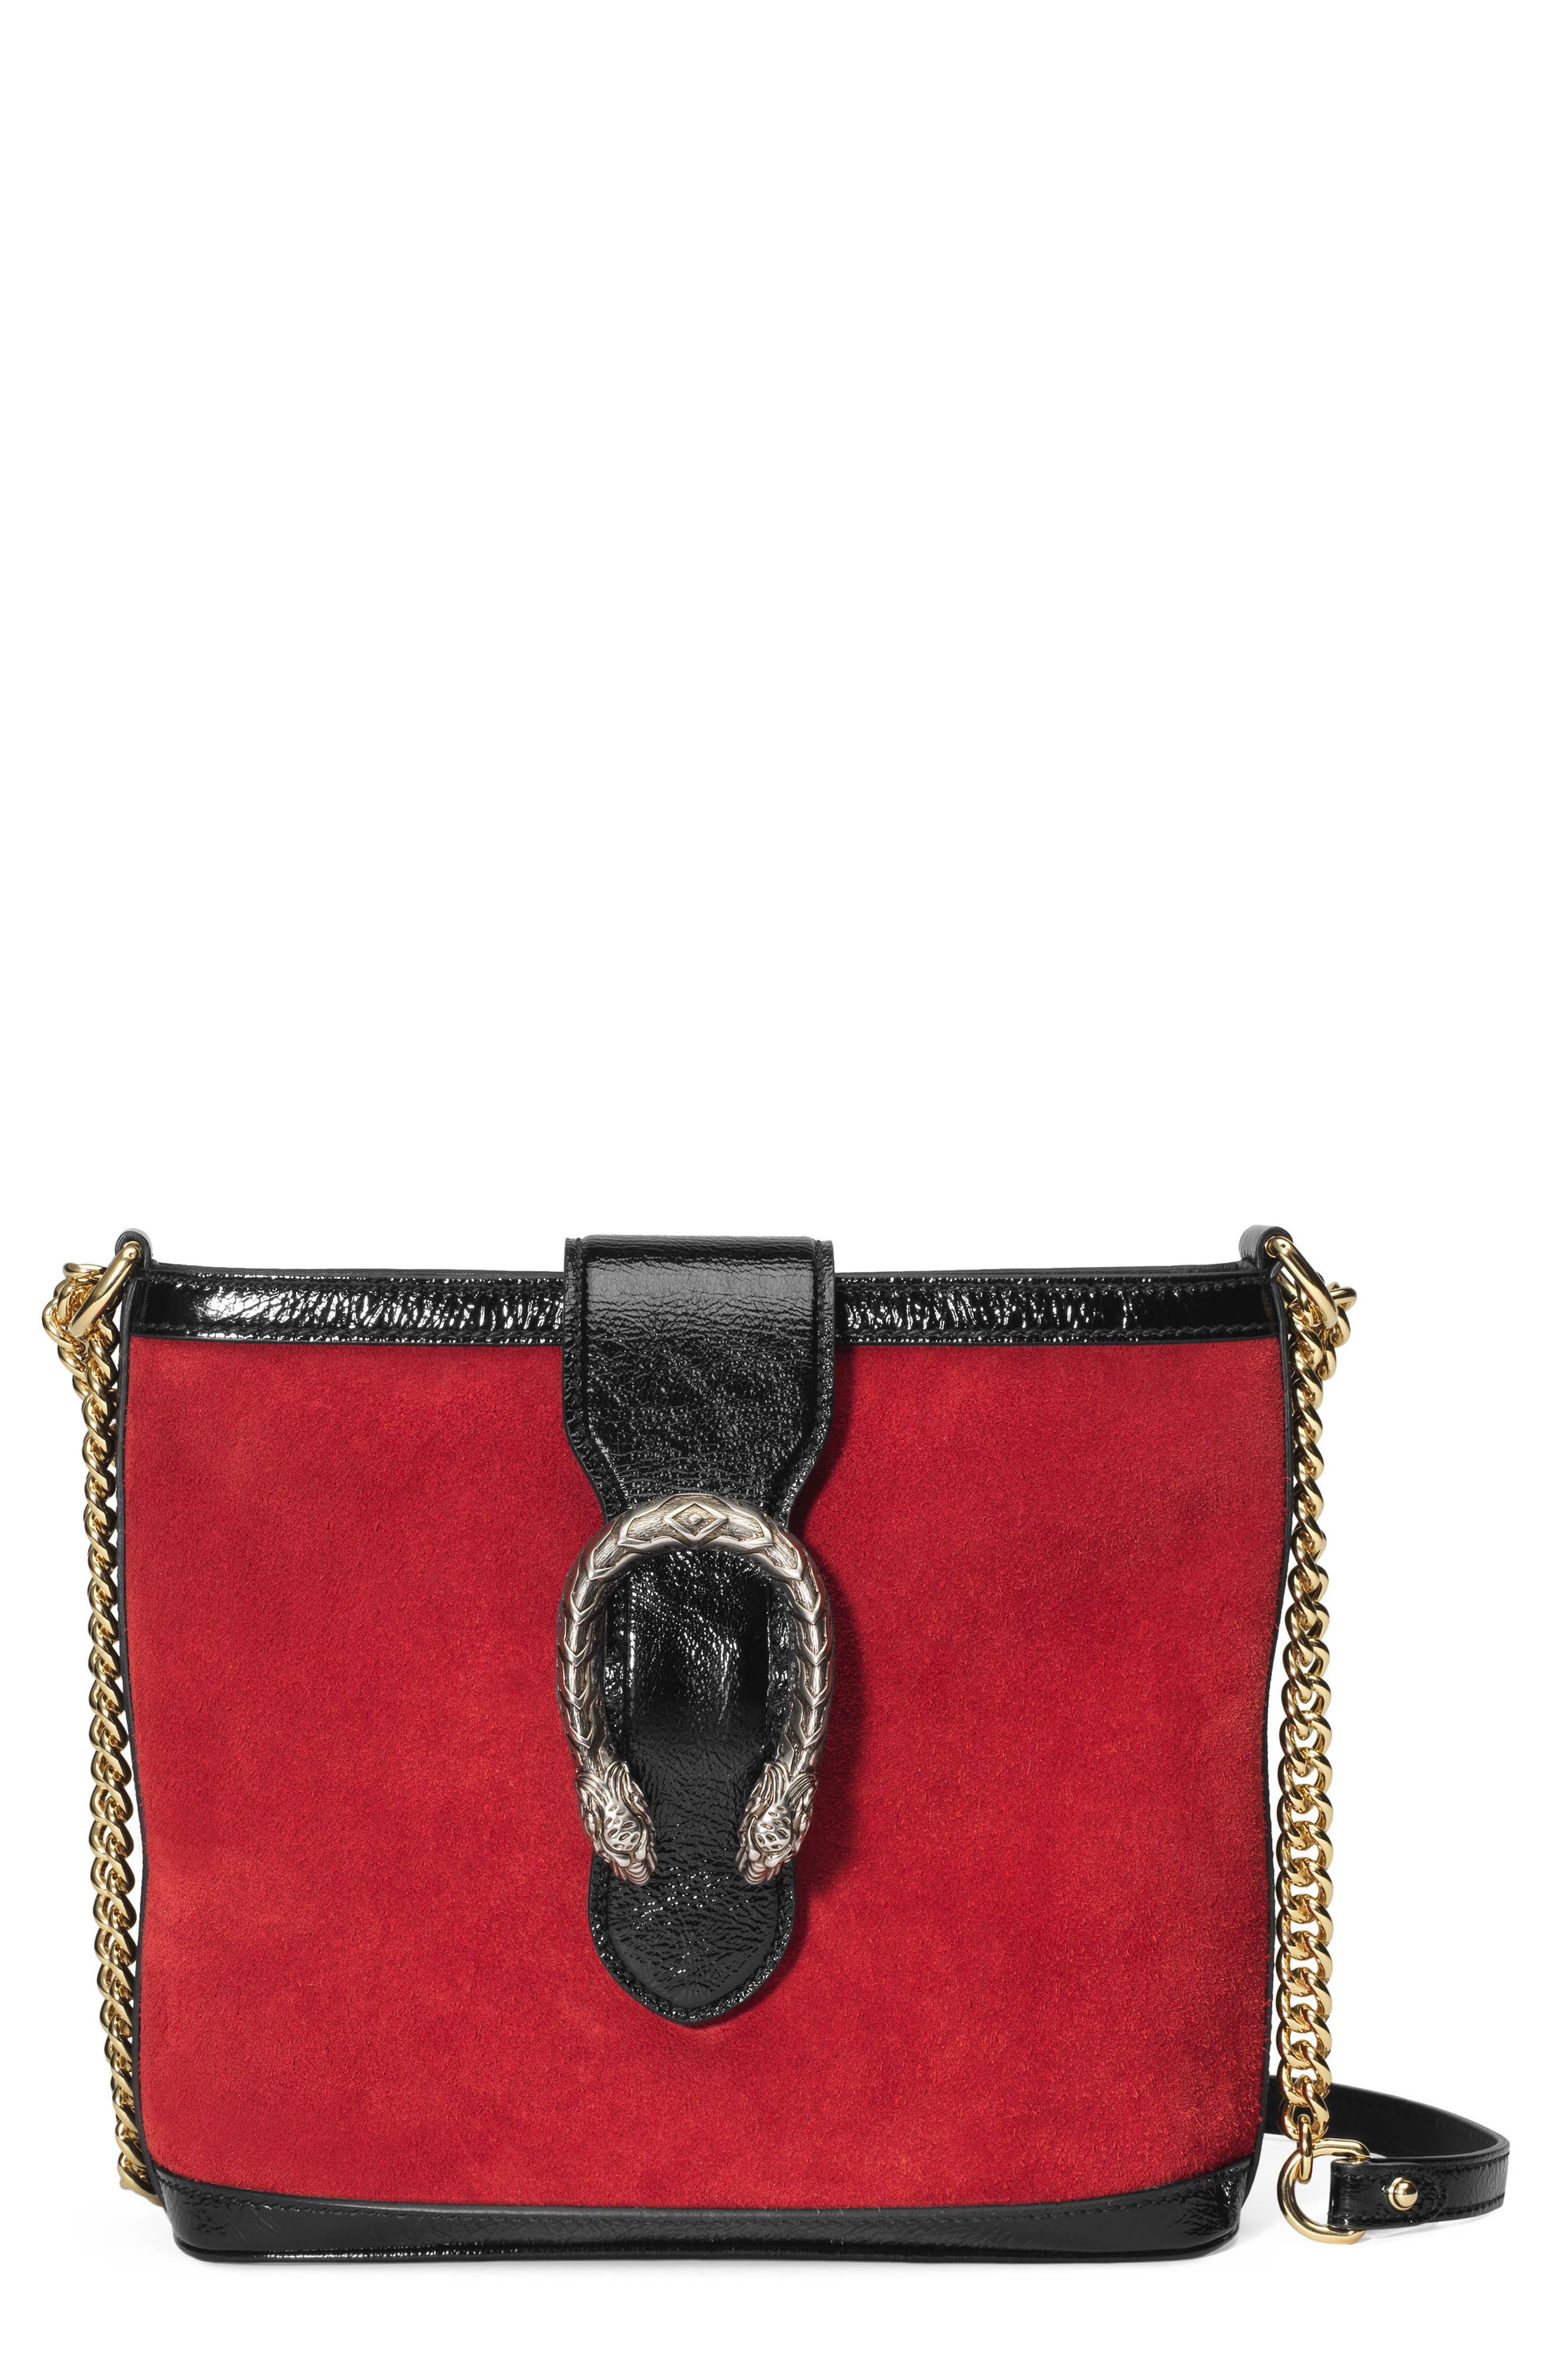 Gucci Medium Dionysus Suede Shoulder Bag